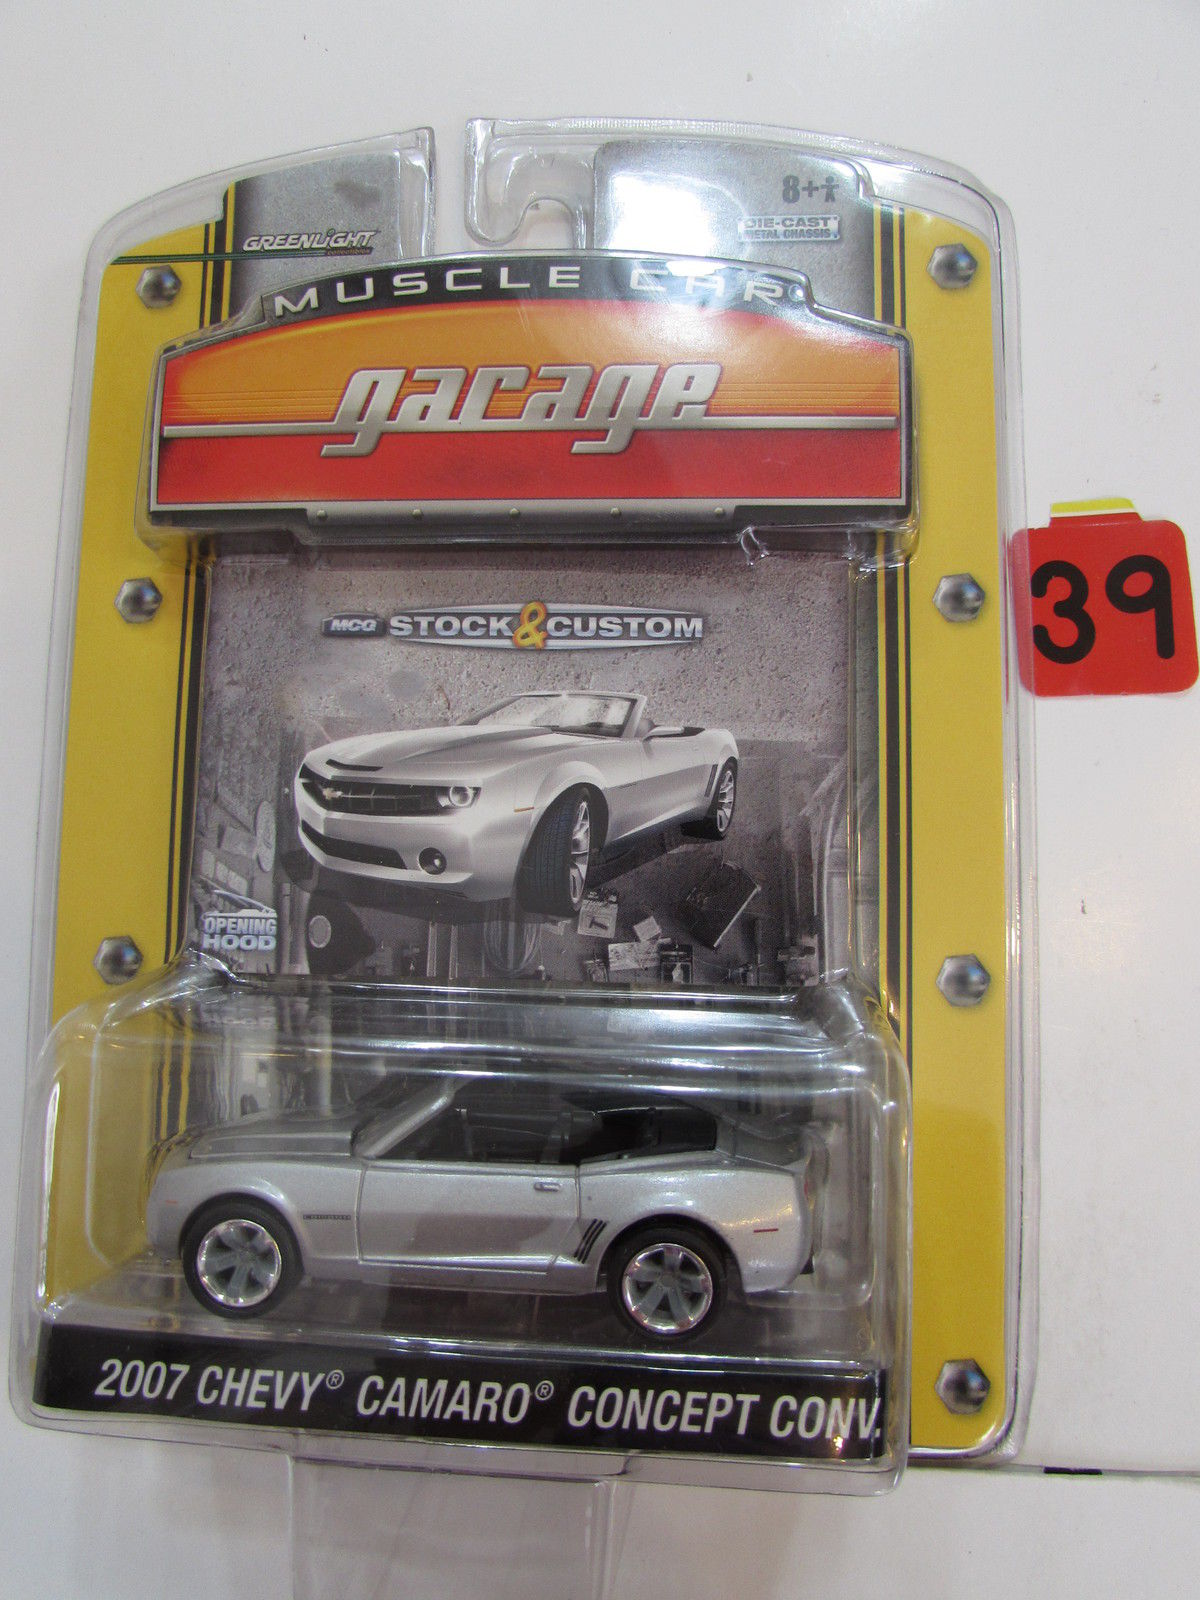 GREENLIGHT MUSCLE CAR GARAGE 2007 CHEVY CAMARO CONCEPT CONV SCALE 1:64